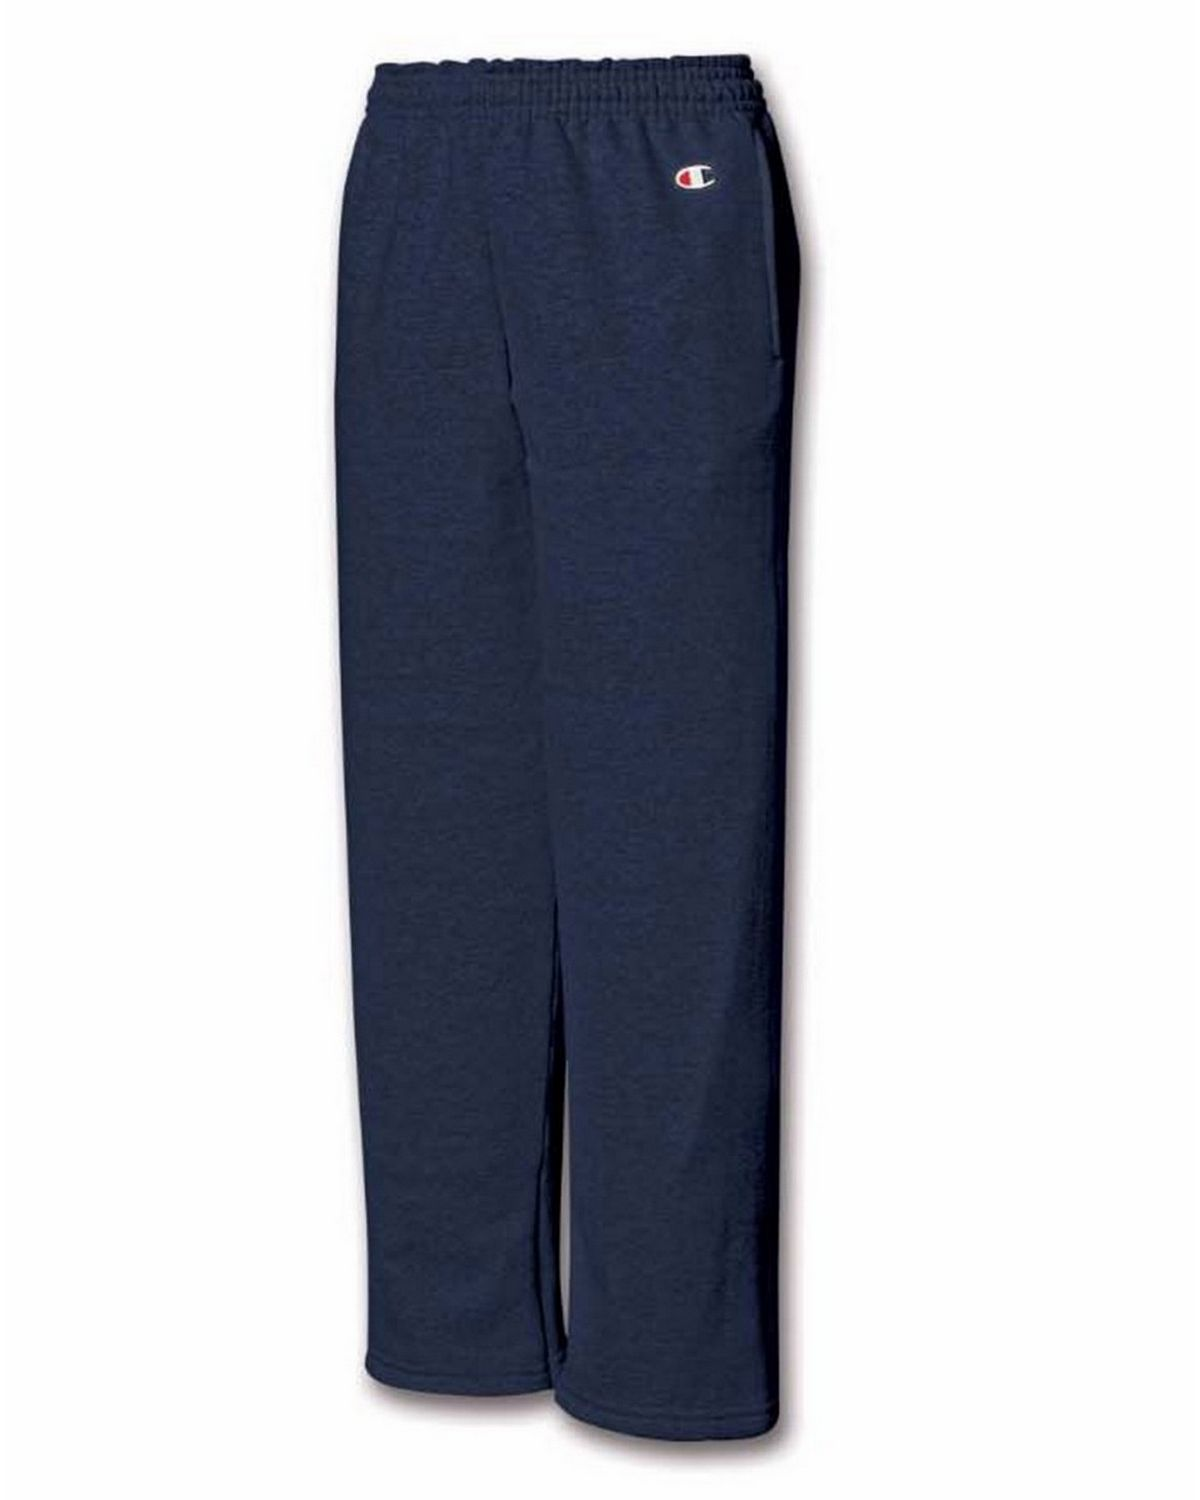 Champion P890 Youth Fleece Open Bottom Pant - Navy - L P890